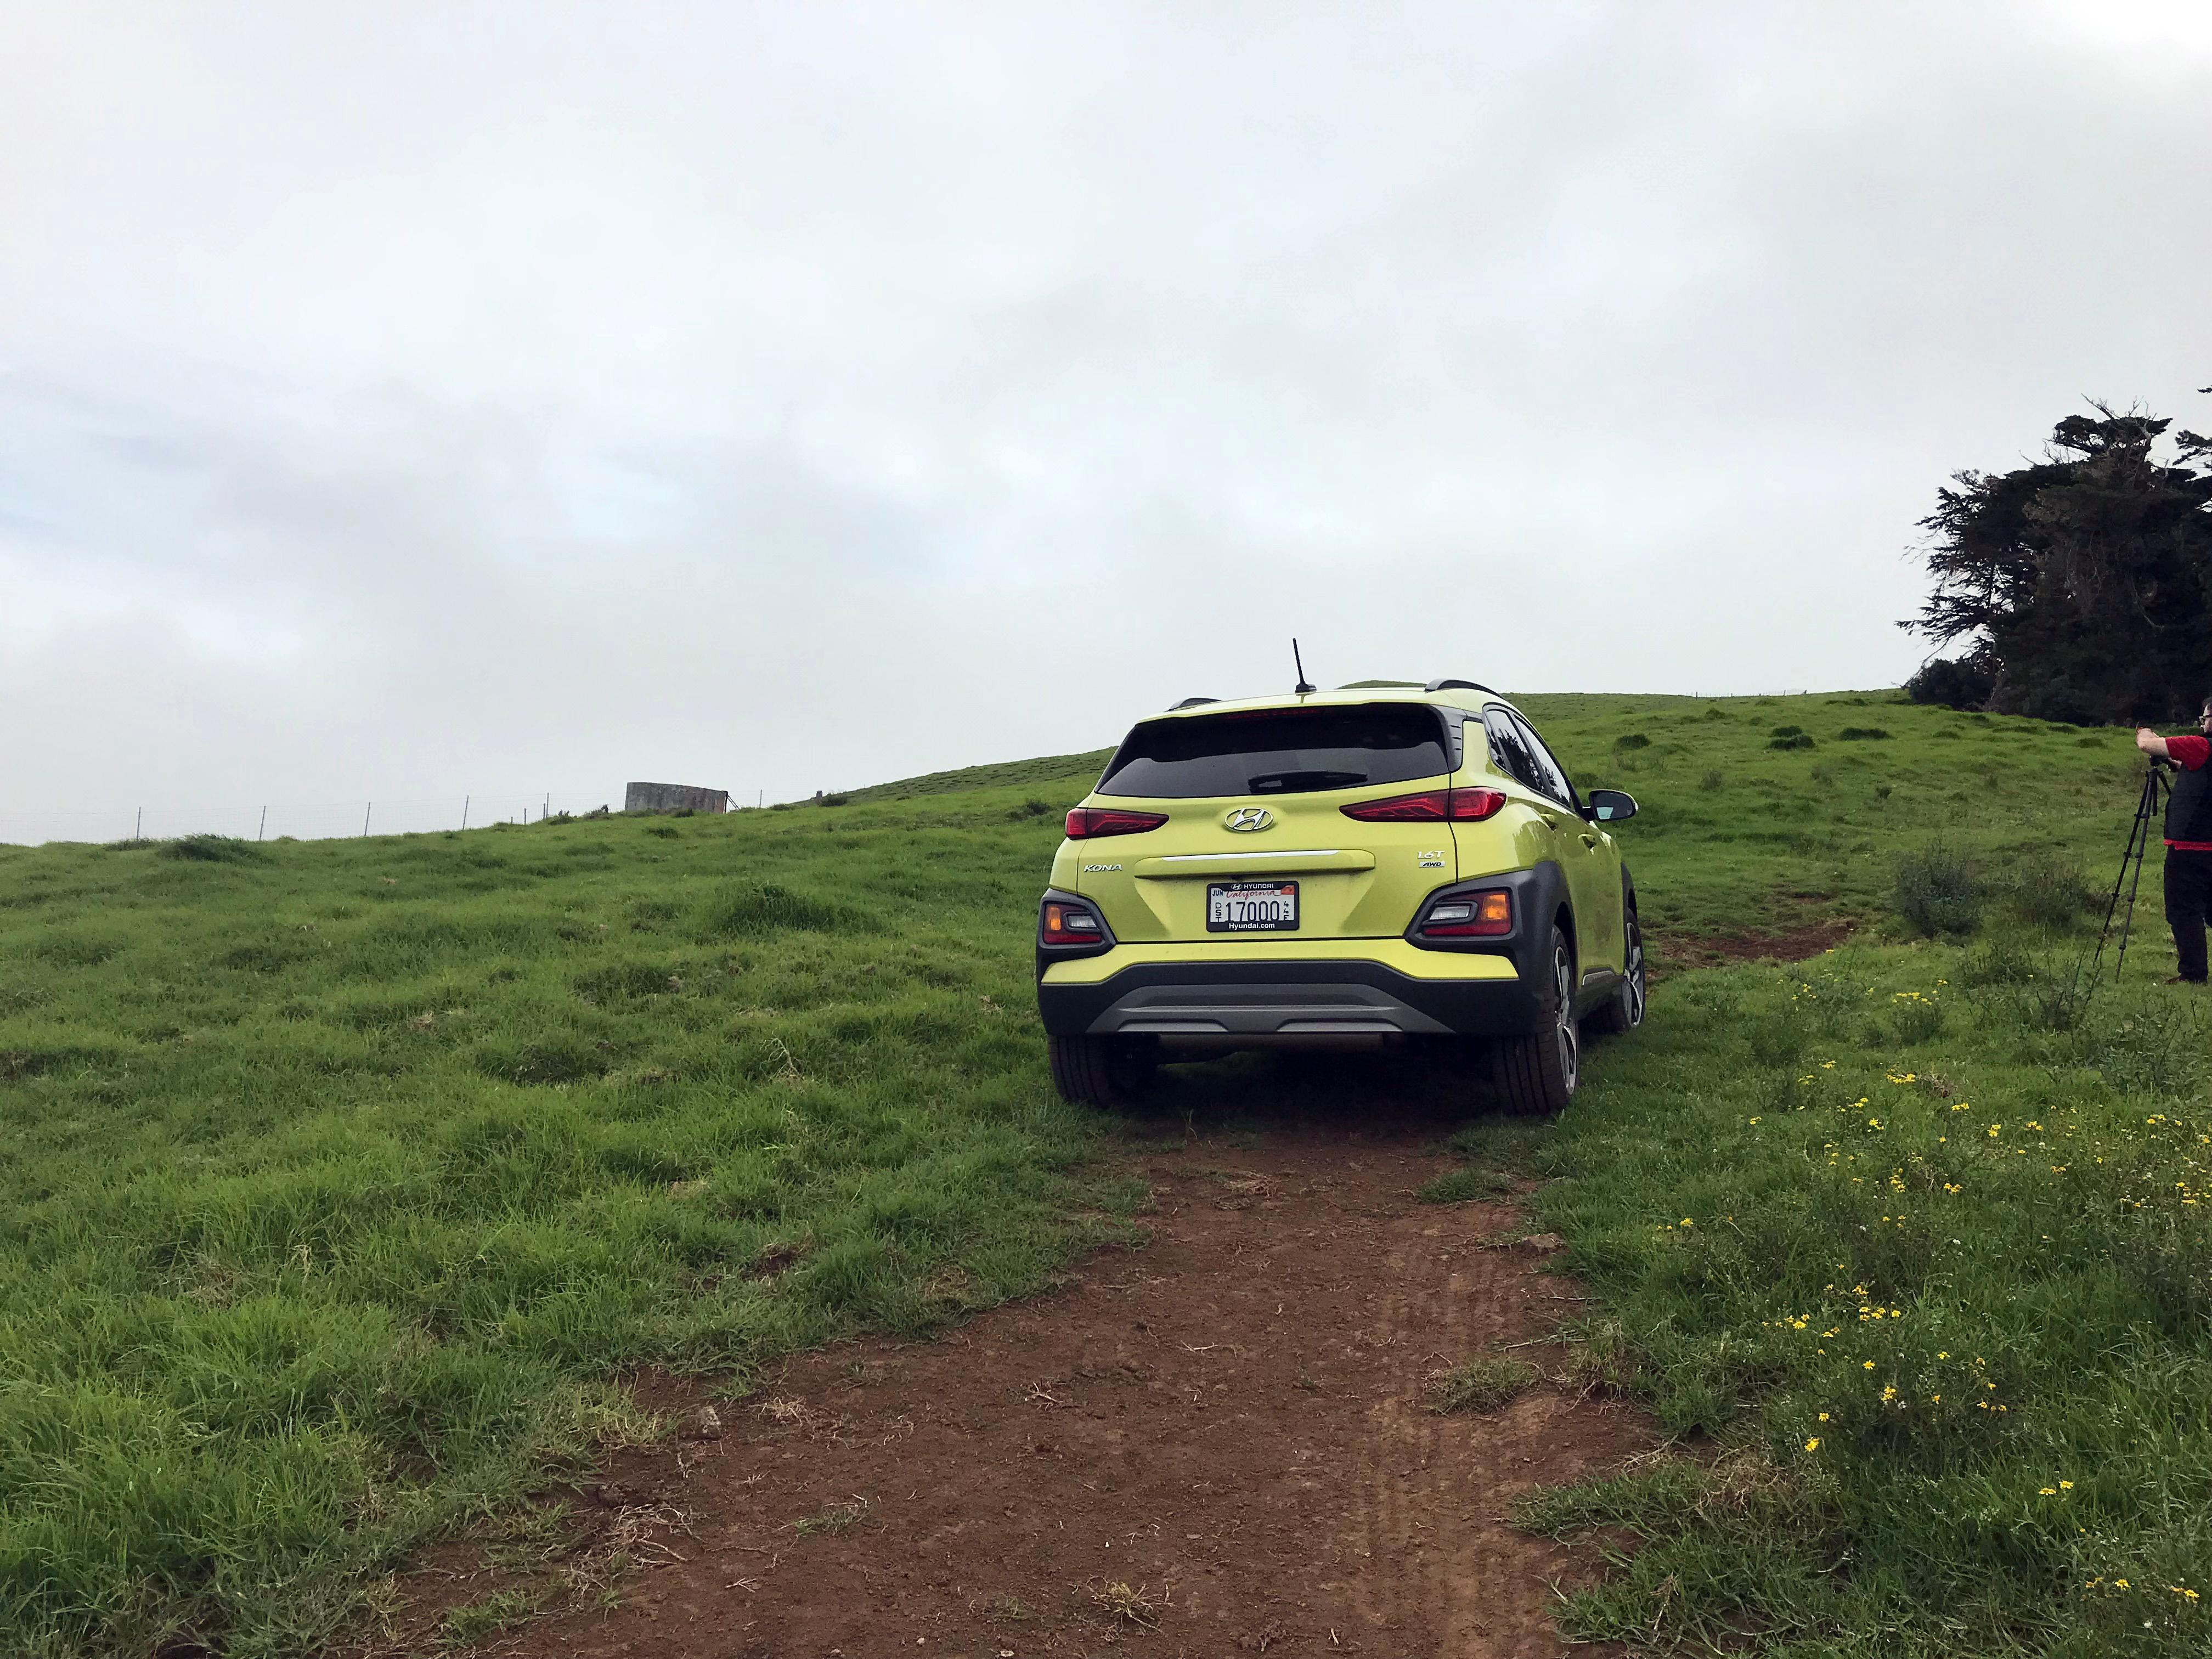 2018 Hyundai Kona (Sinclair Broadcast Group / Jill Ciminillo)